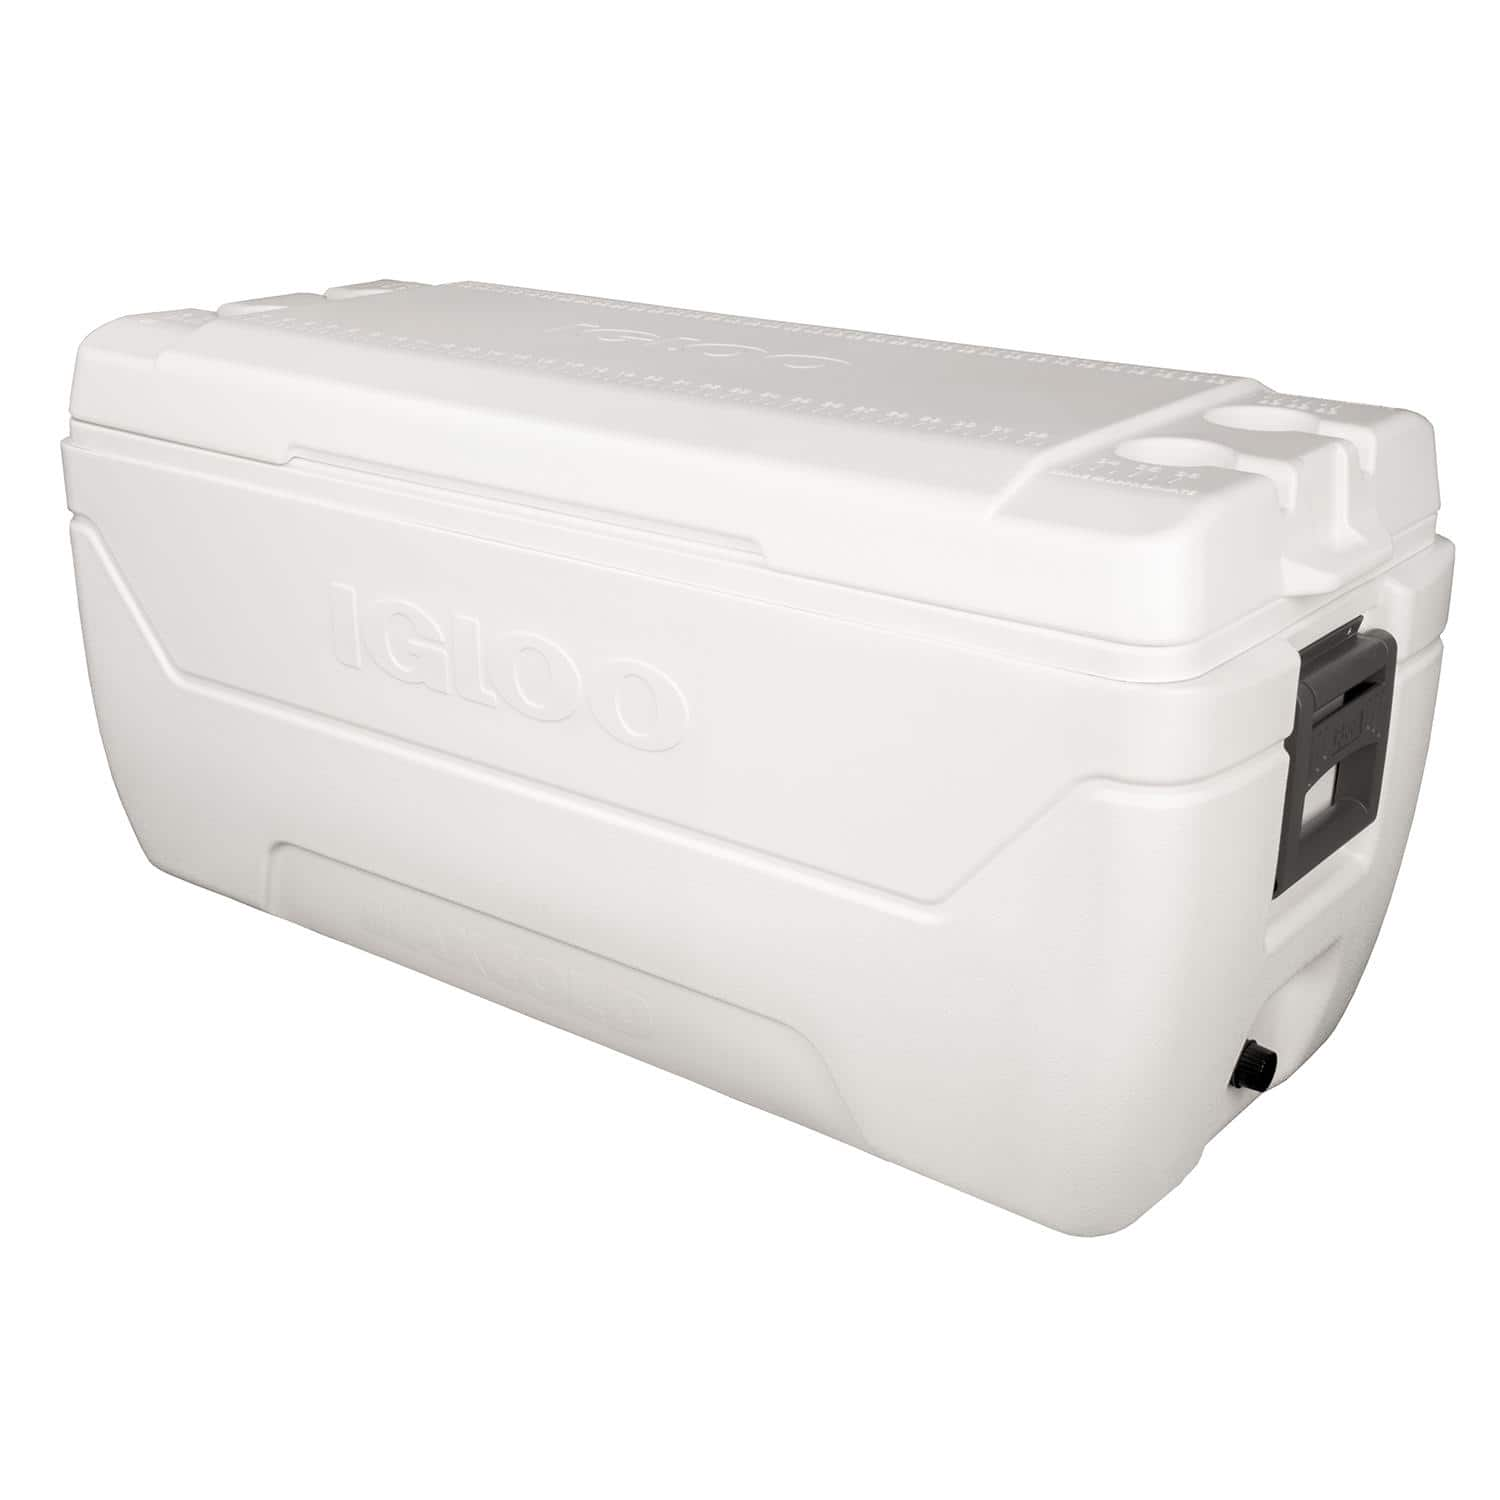 Sam's Club Members : 150-Qt. MaxCold Performance Cooler, $59.94, free shipping